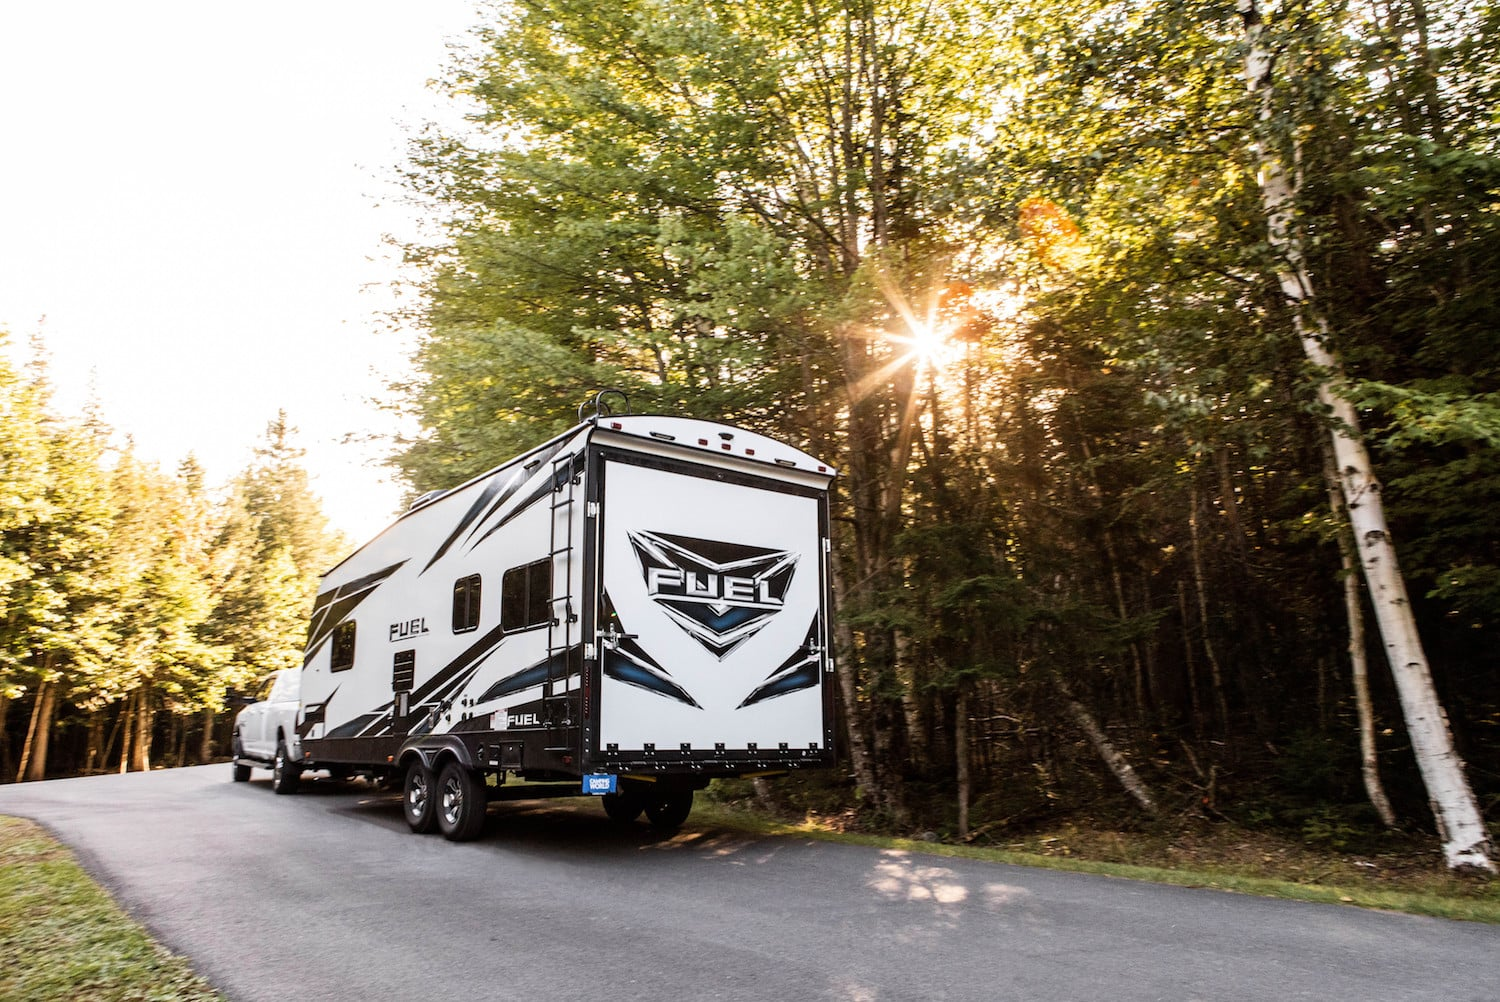 2019 Heartland Fuel Rv on the road.